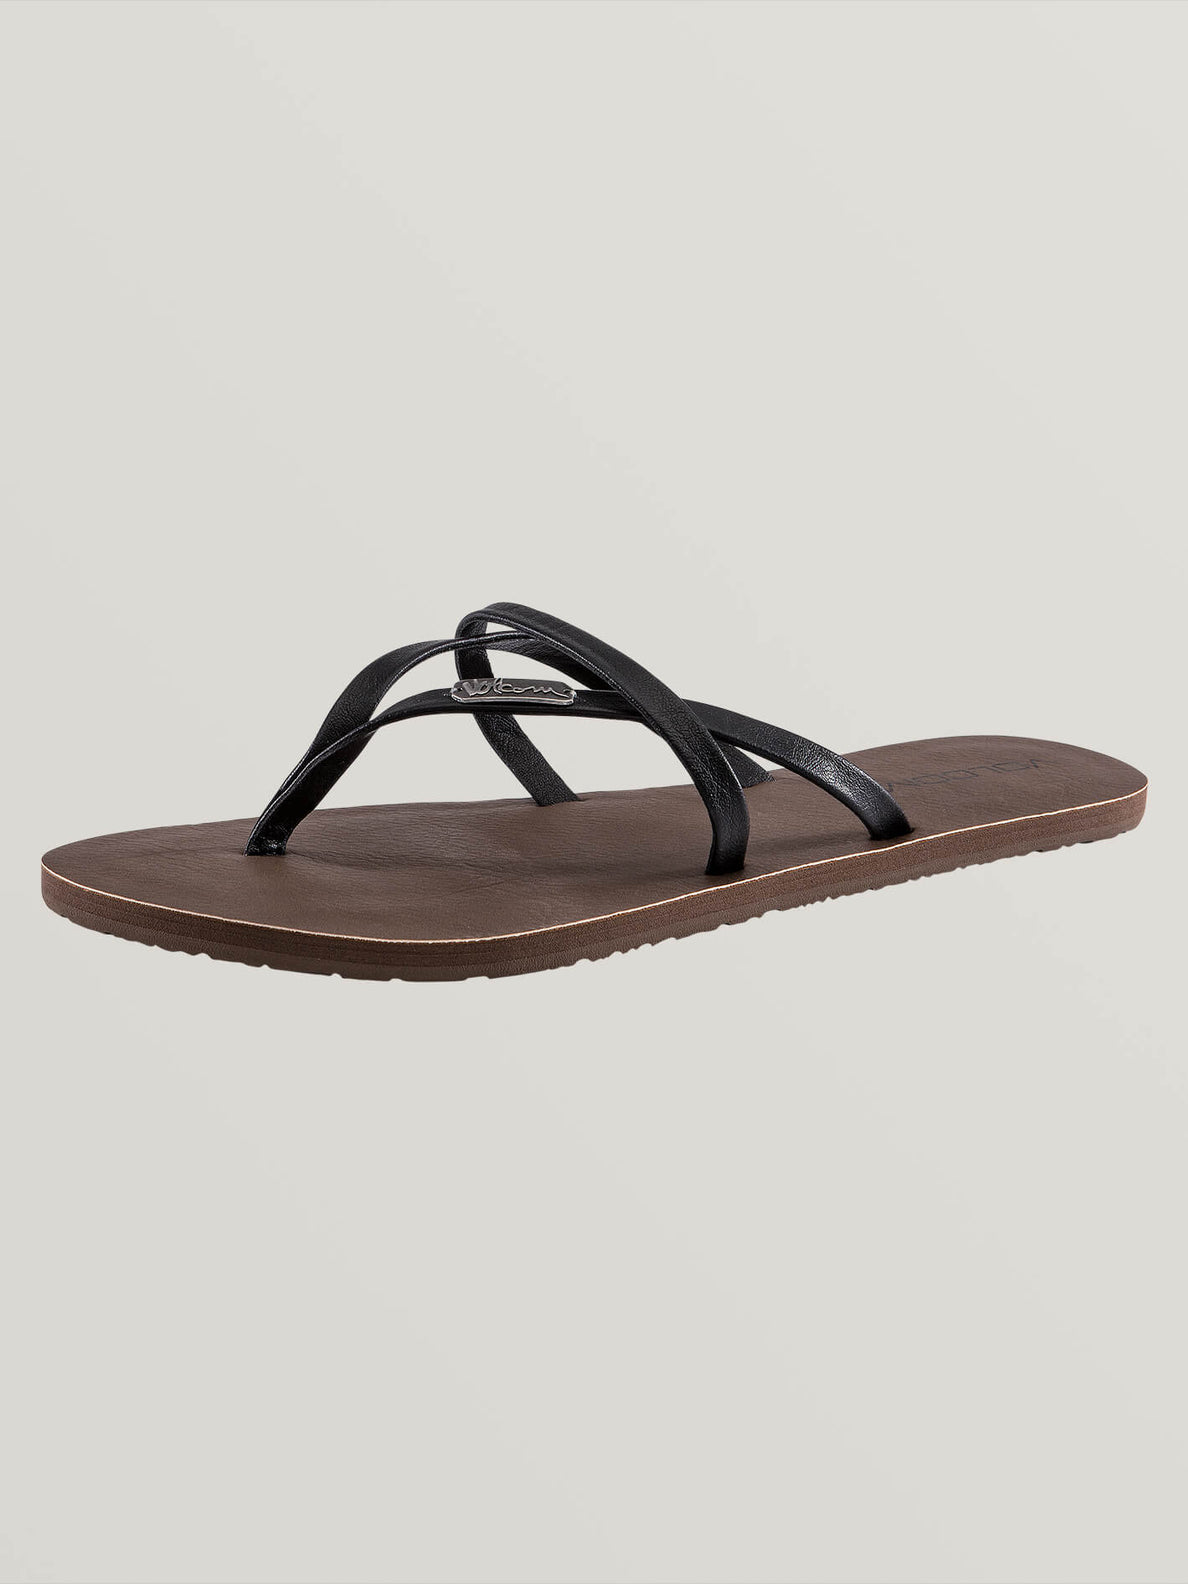 All Night Long Sandals In Black, Back View